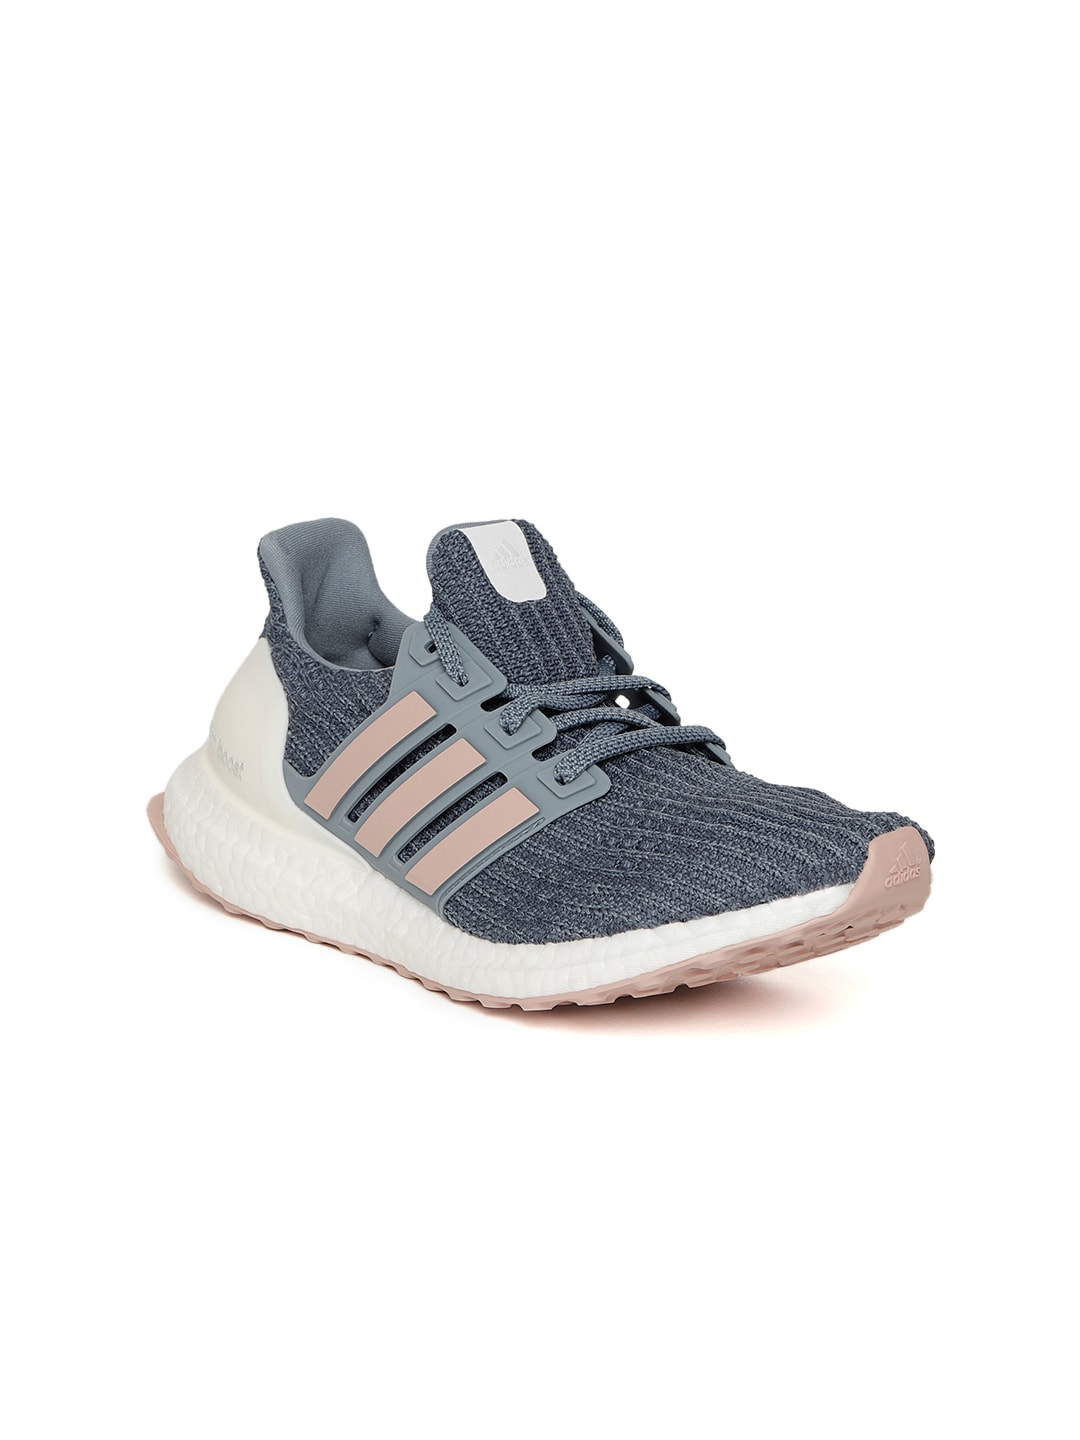 d4da29e8f4f Adidas Ultraboost - Buy Adidas Ultraboost online in India